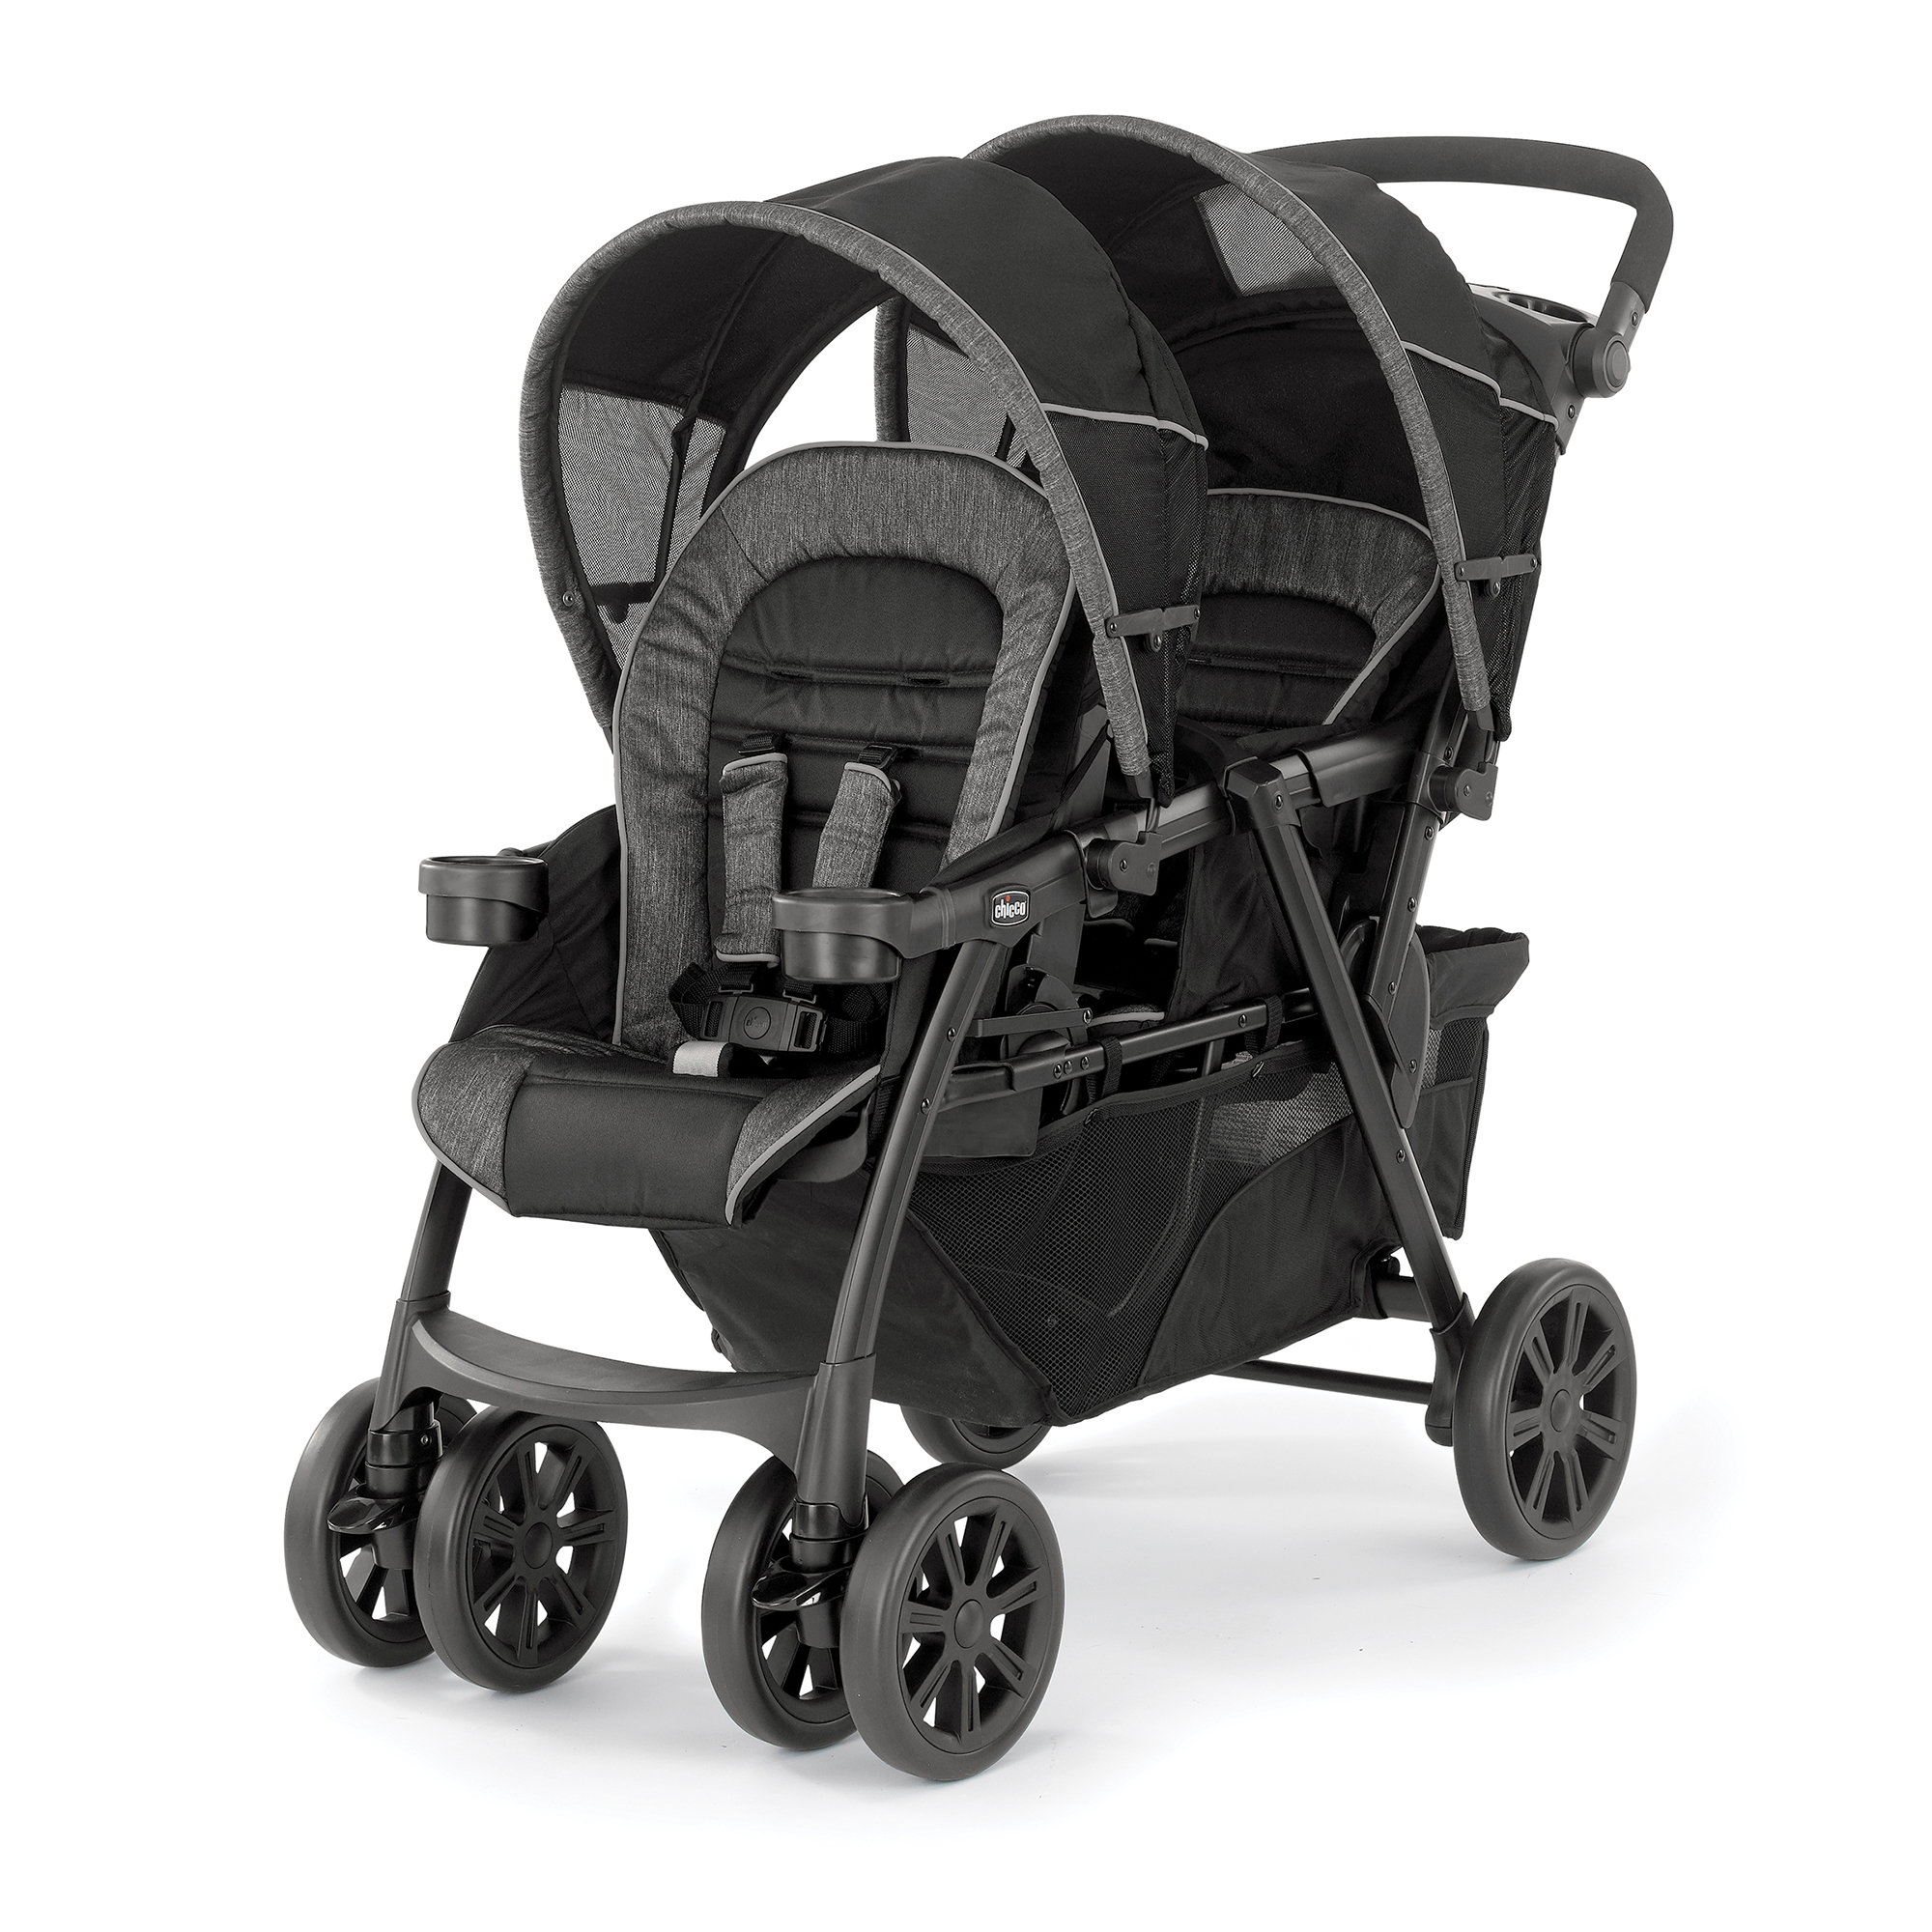 Travel System Tandem Stroller Chicco Cortina Together Travel System Car Seat Compatible Double Stroller Ombra